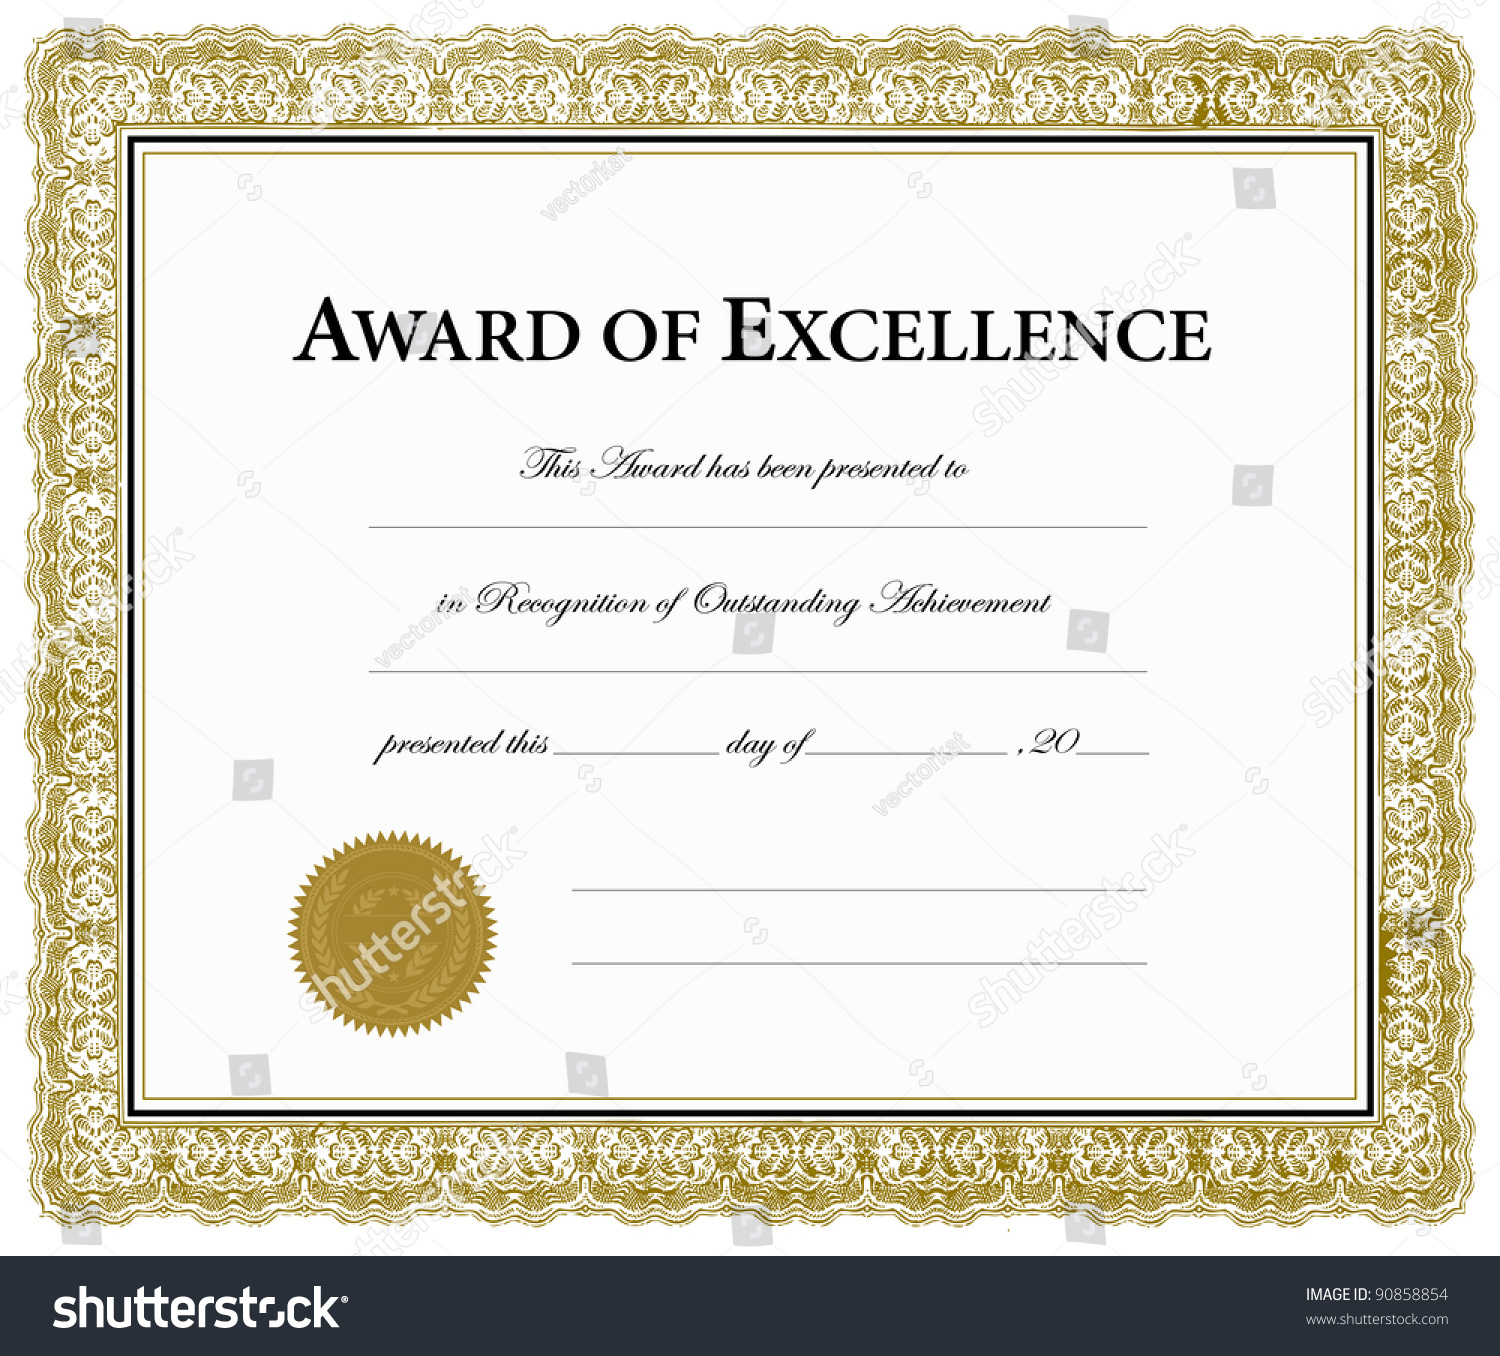 vector award of excellence certificate pieces are